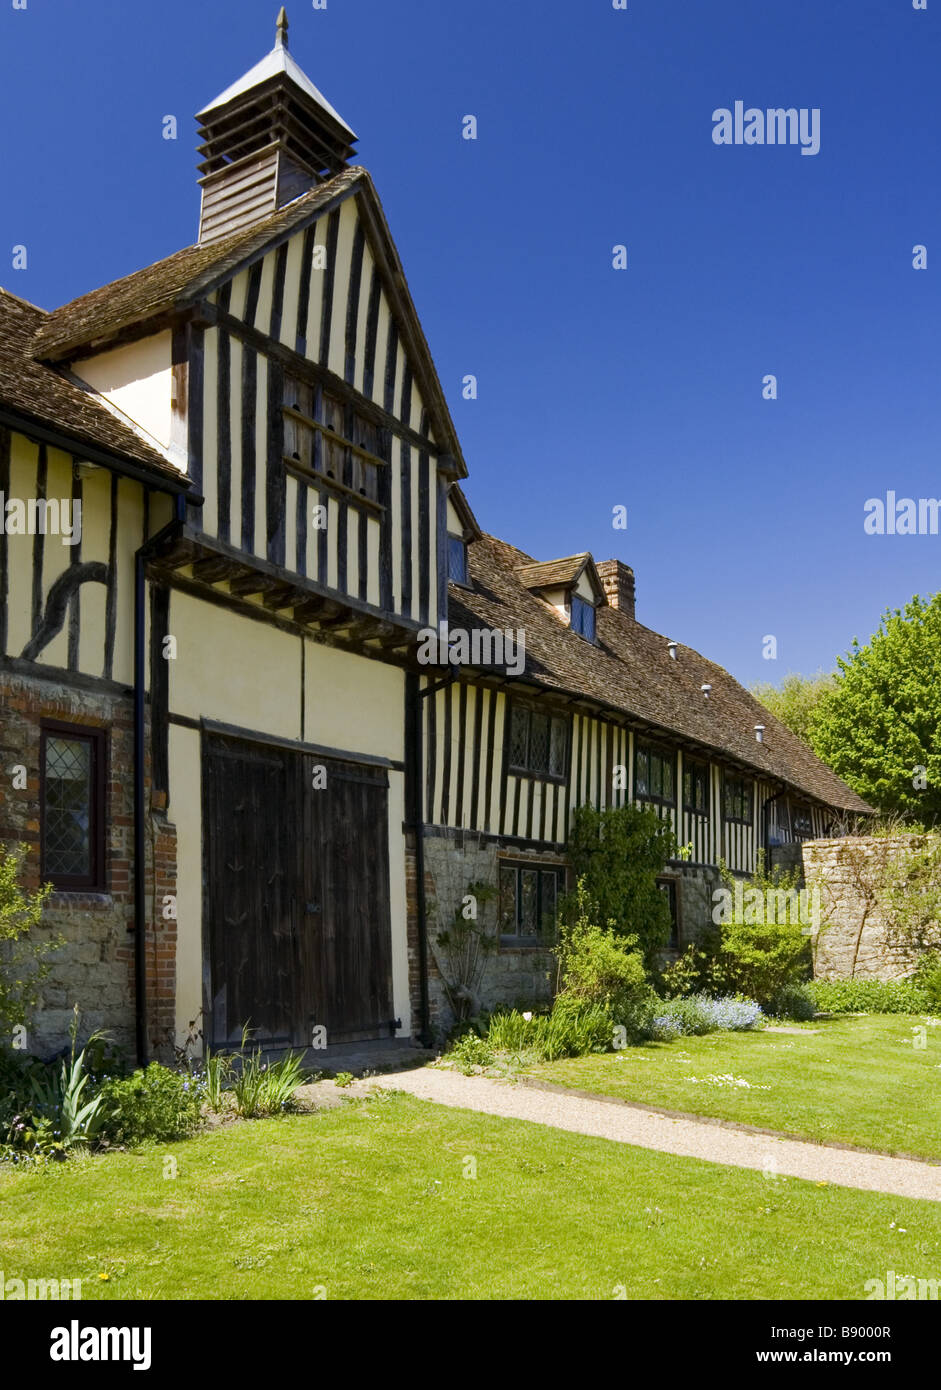 Centre of the range of the fifteenth-century cottages at Ightham Mote, Sevenoaks, Kent. - Stock Image